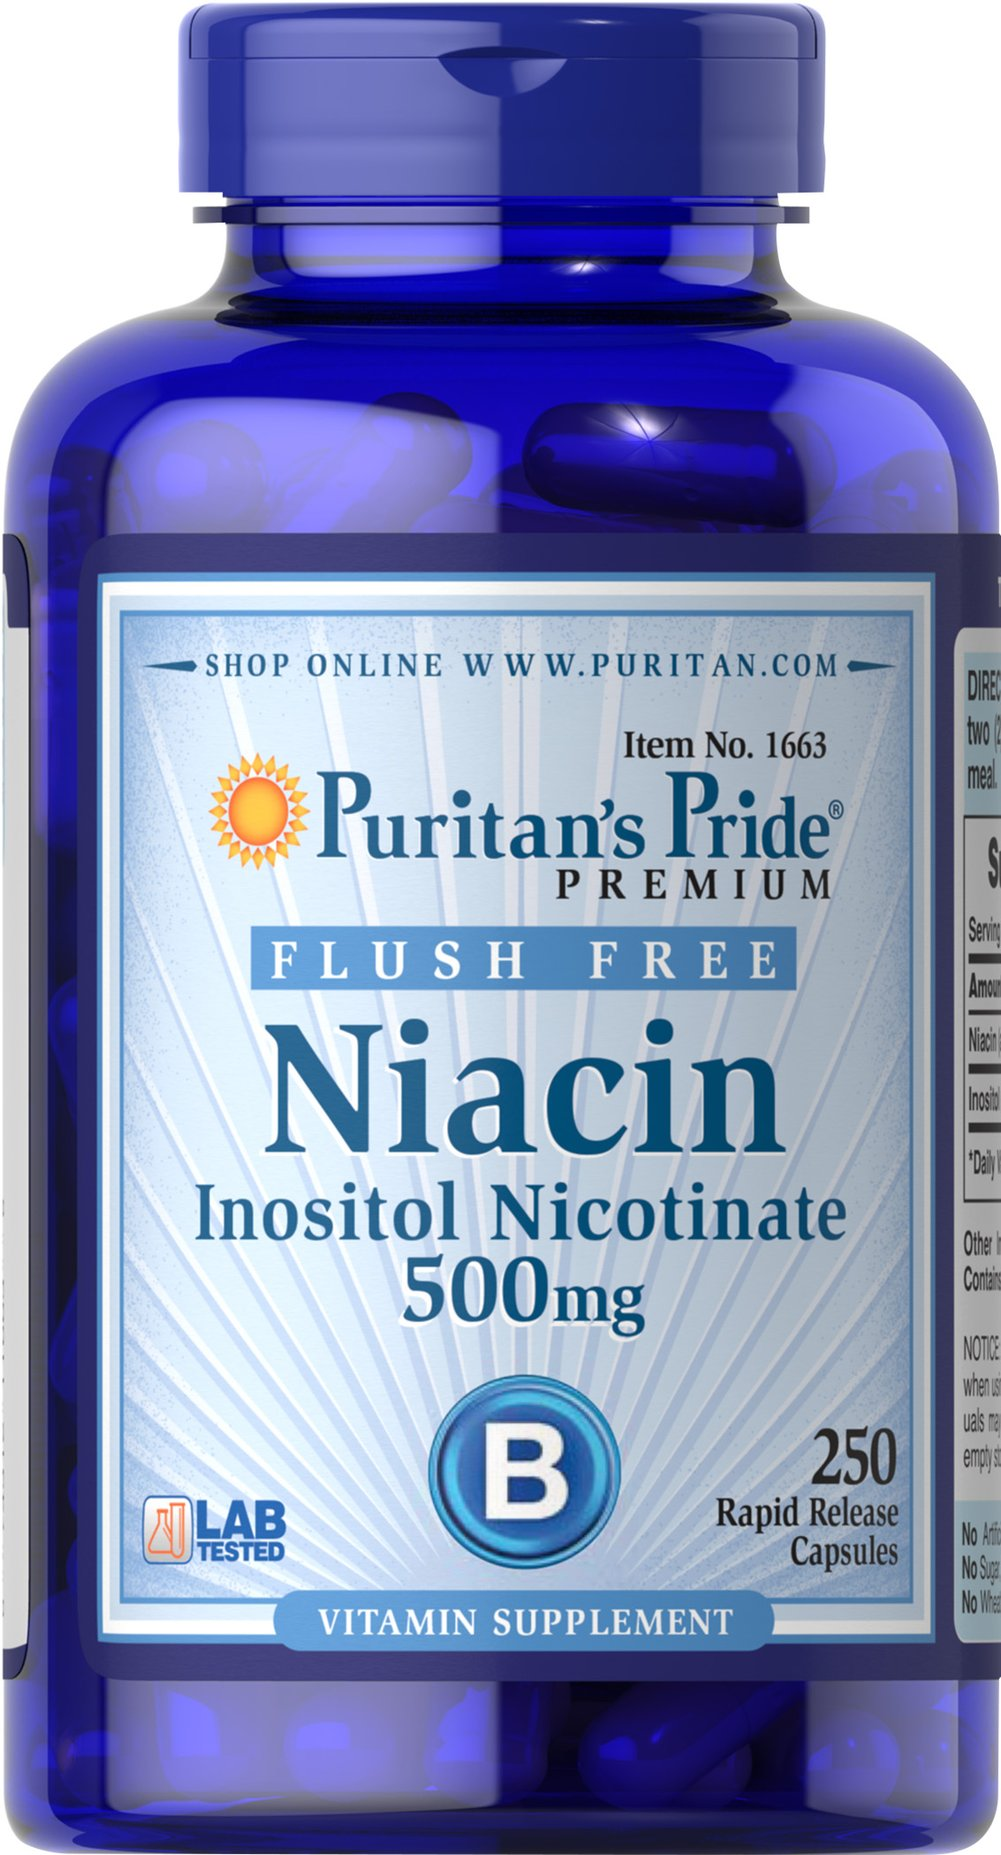 Flush Free Niacin 500 mg Thumbnail Alternate Bottle View